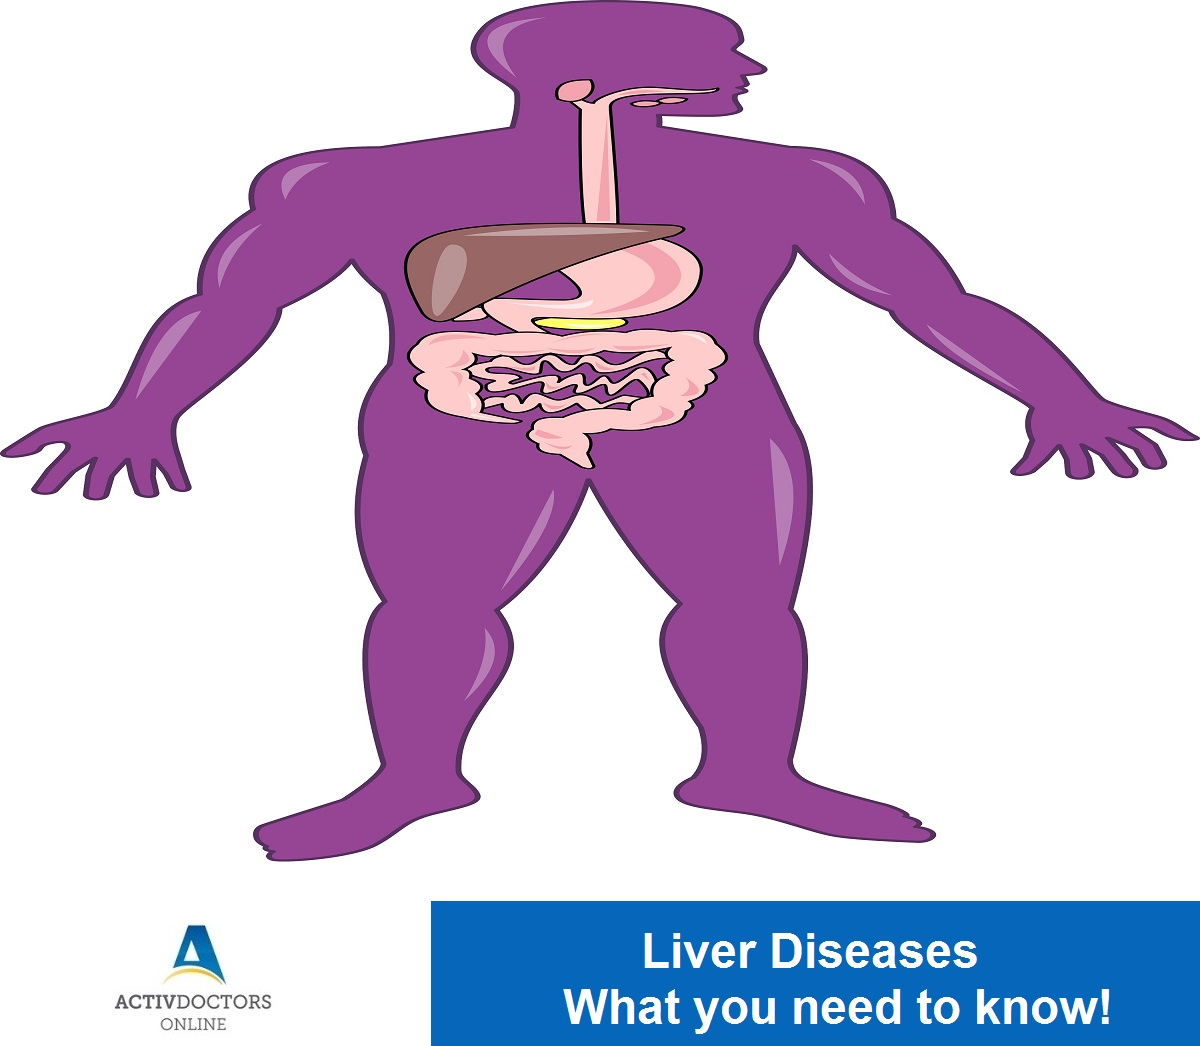 Liver Diseases – What you need to know!